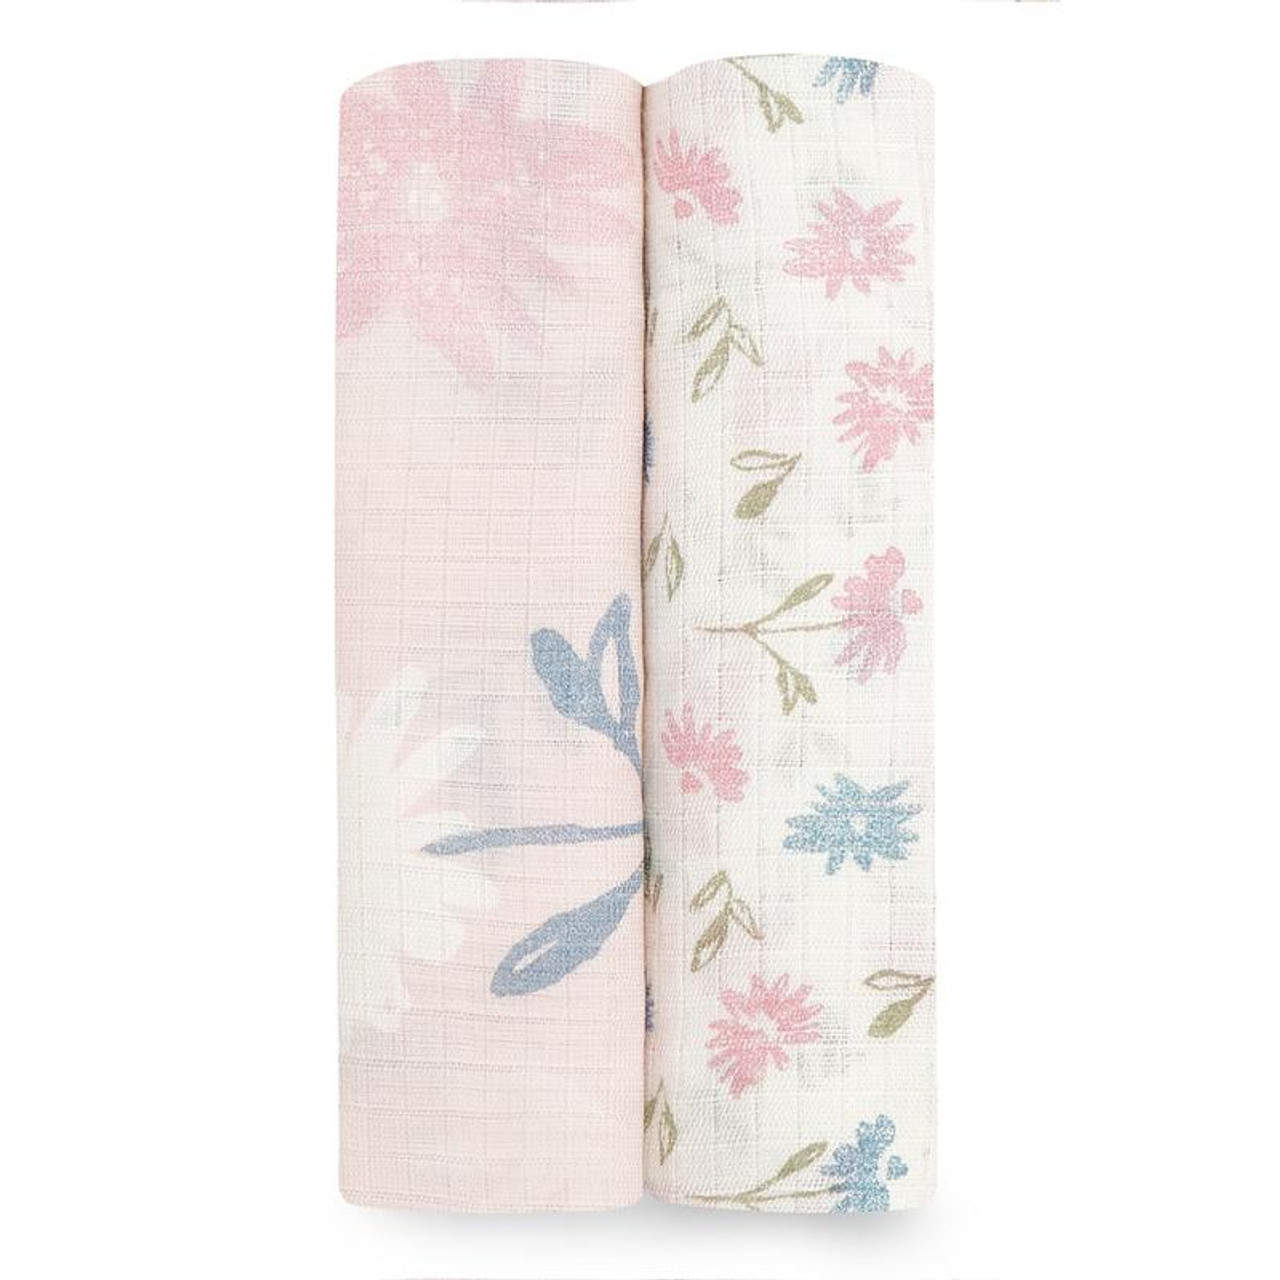 Aden + Anais Silky Soft Bamboo Muslin Swaddle 2 Pack at Baby Barn Discounts This ultra soft set of traditional swaddles by Aden + Anais have been designed for their comforting breathability and touchable softness. With a variety of uses these swaddles are a baby essential.